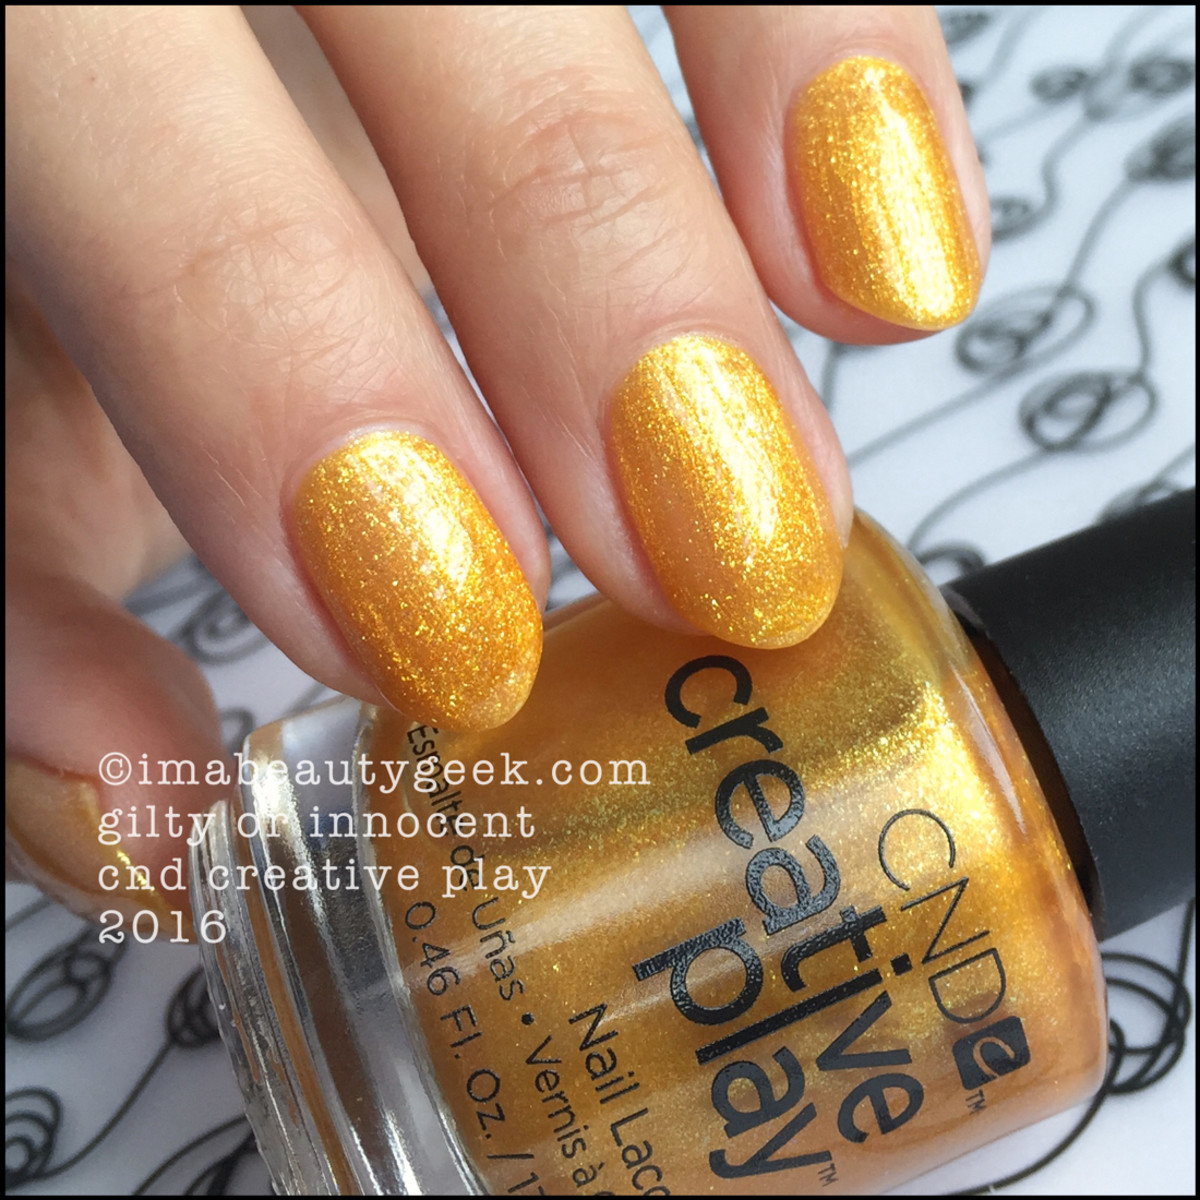 CND Creative Play Gilty or Innocent_CND Creative Play Nail Polish Swatches